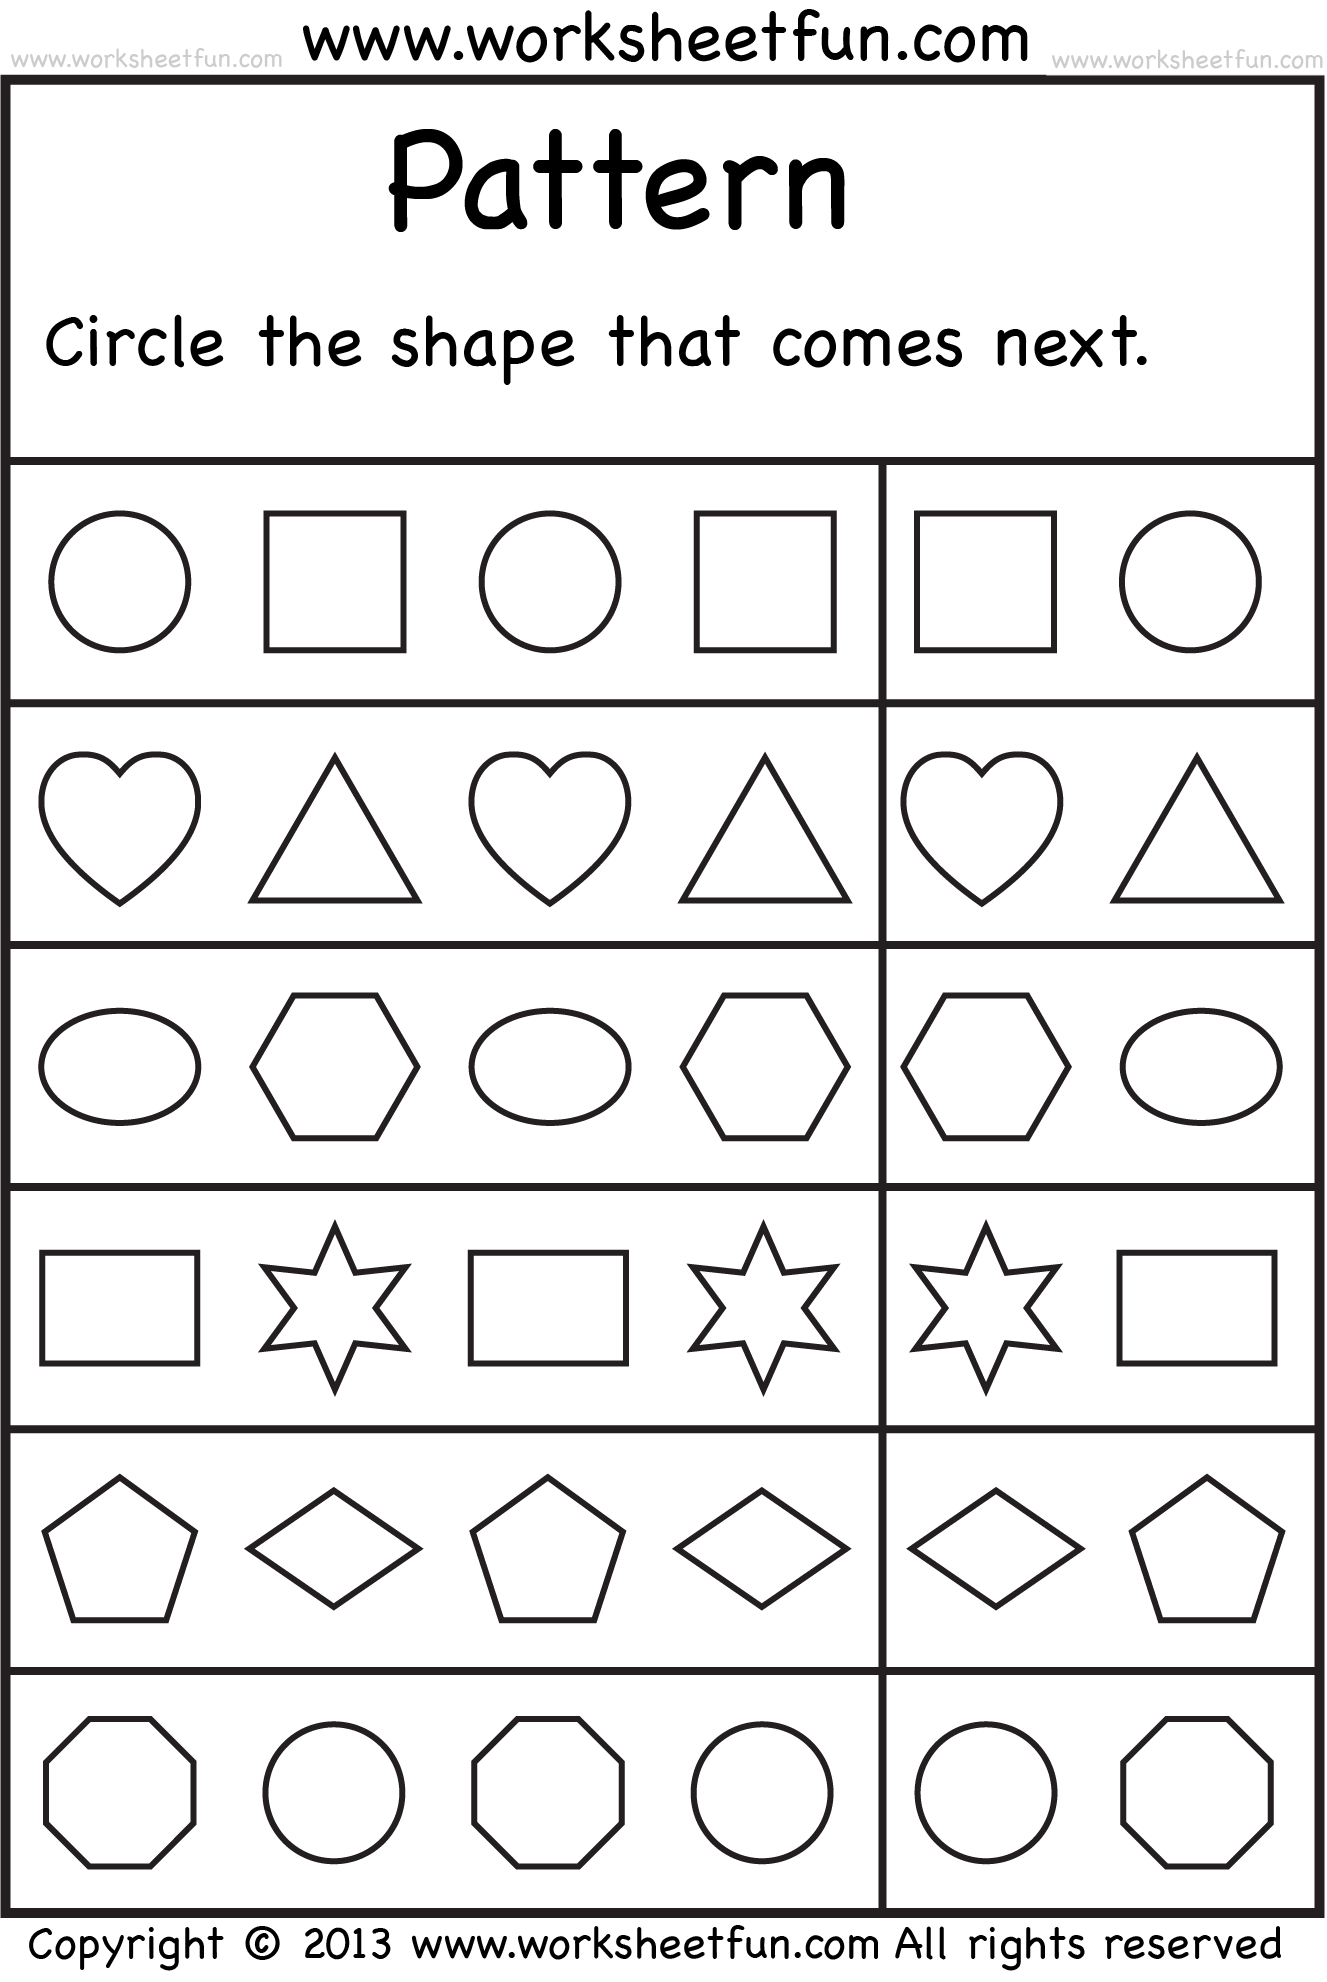 Weirdmailus  Prepossessing  Images About School Worksheets On Pinterest  Number Words  With Extraordinary  Images About School Worksheets On Pinterest  Number Words Alphabet Worksheets And Free Printable Kindergarten Worksheets With Awesome Excel Link To Worksheet Also Building Healthy Relationships Worksheet In Addition Adding Tens Worksheets And Valentines Math Worksheets As Well As Multi Digit Multiplication Worksheet Additionally Dividing And Multiplying Fractions Worksheet From Pinterestcom With Weirdmailus  Extraordinary  Images About School Worksheets On Pinterest  Number Words  With Awesome  Images About School Worksheets On Pinterest  Number Words Alphabet Worksheets And Free Printable Kindergarten Worksheets And Prepossessing Excel Link To Worksheet Also Building Healthy Relationships Worksheet In Addition Adding Tens Worksheets From Pinterestcom